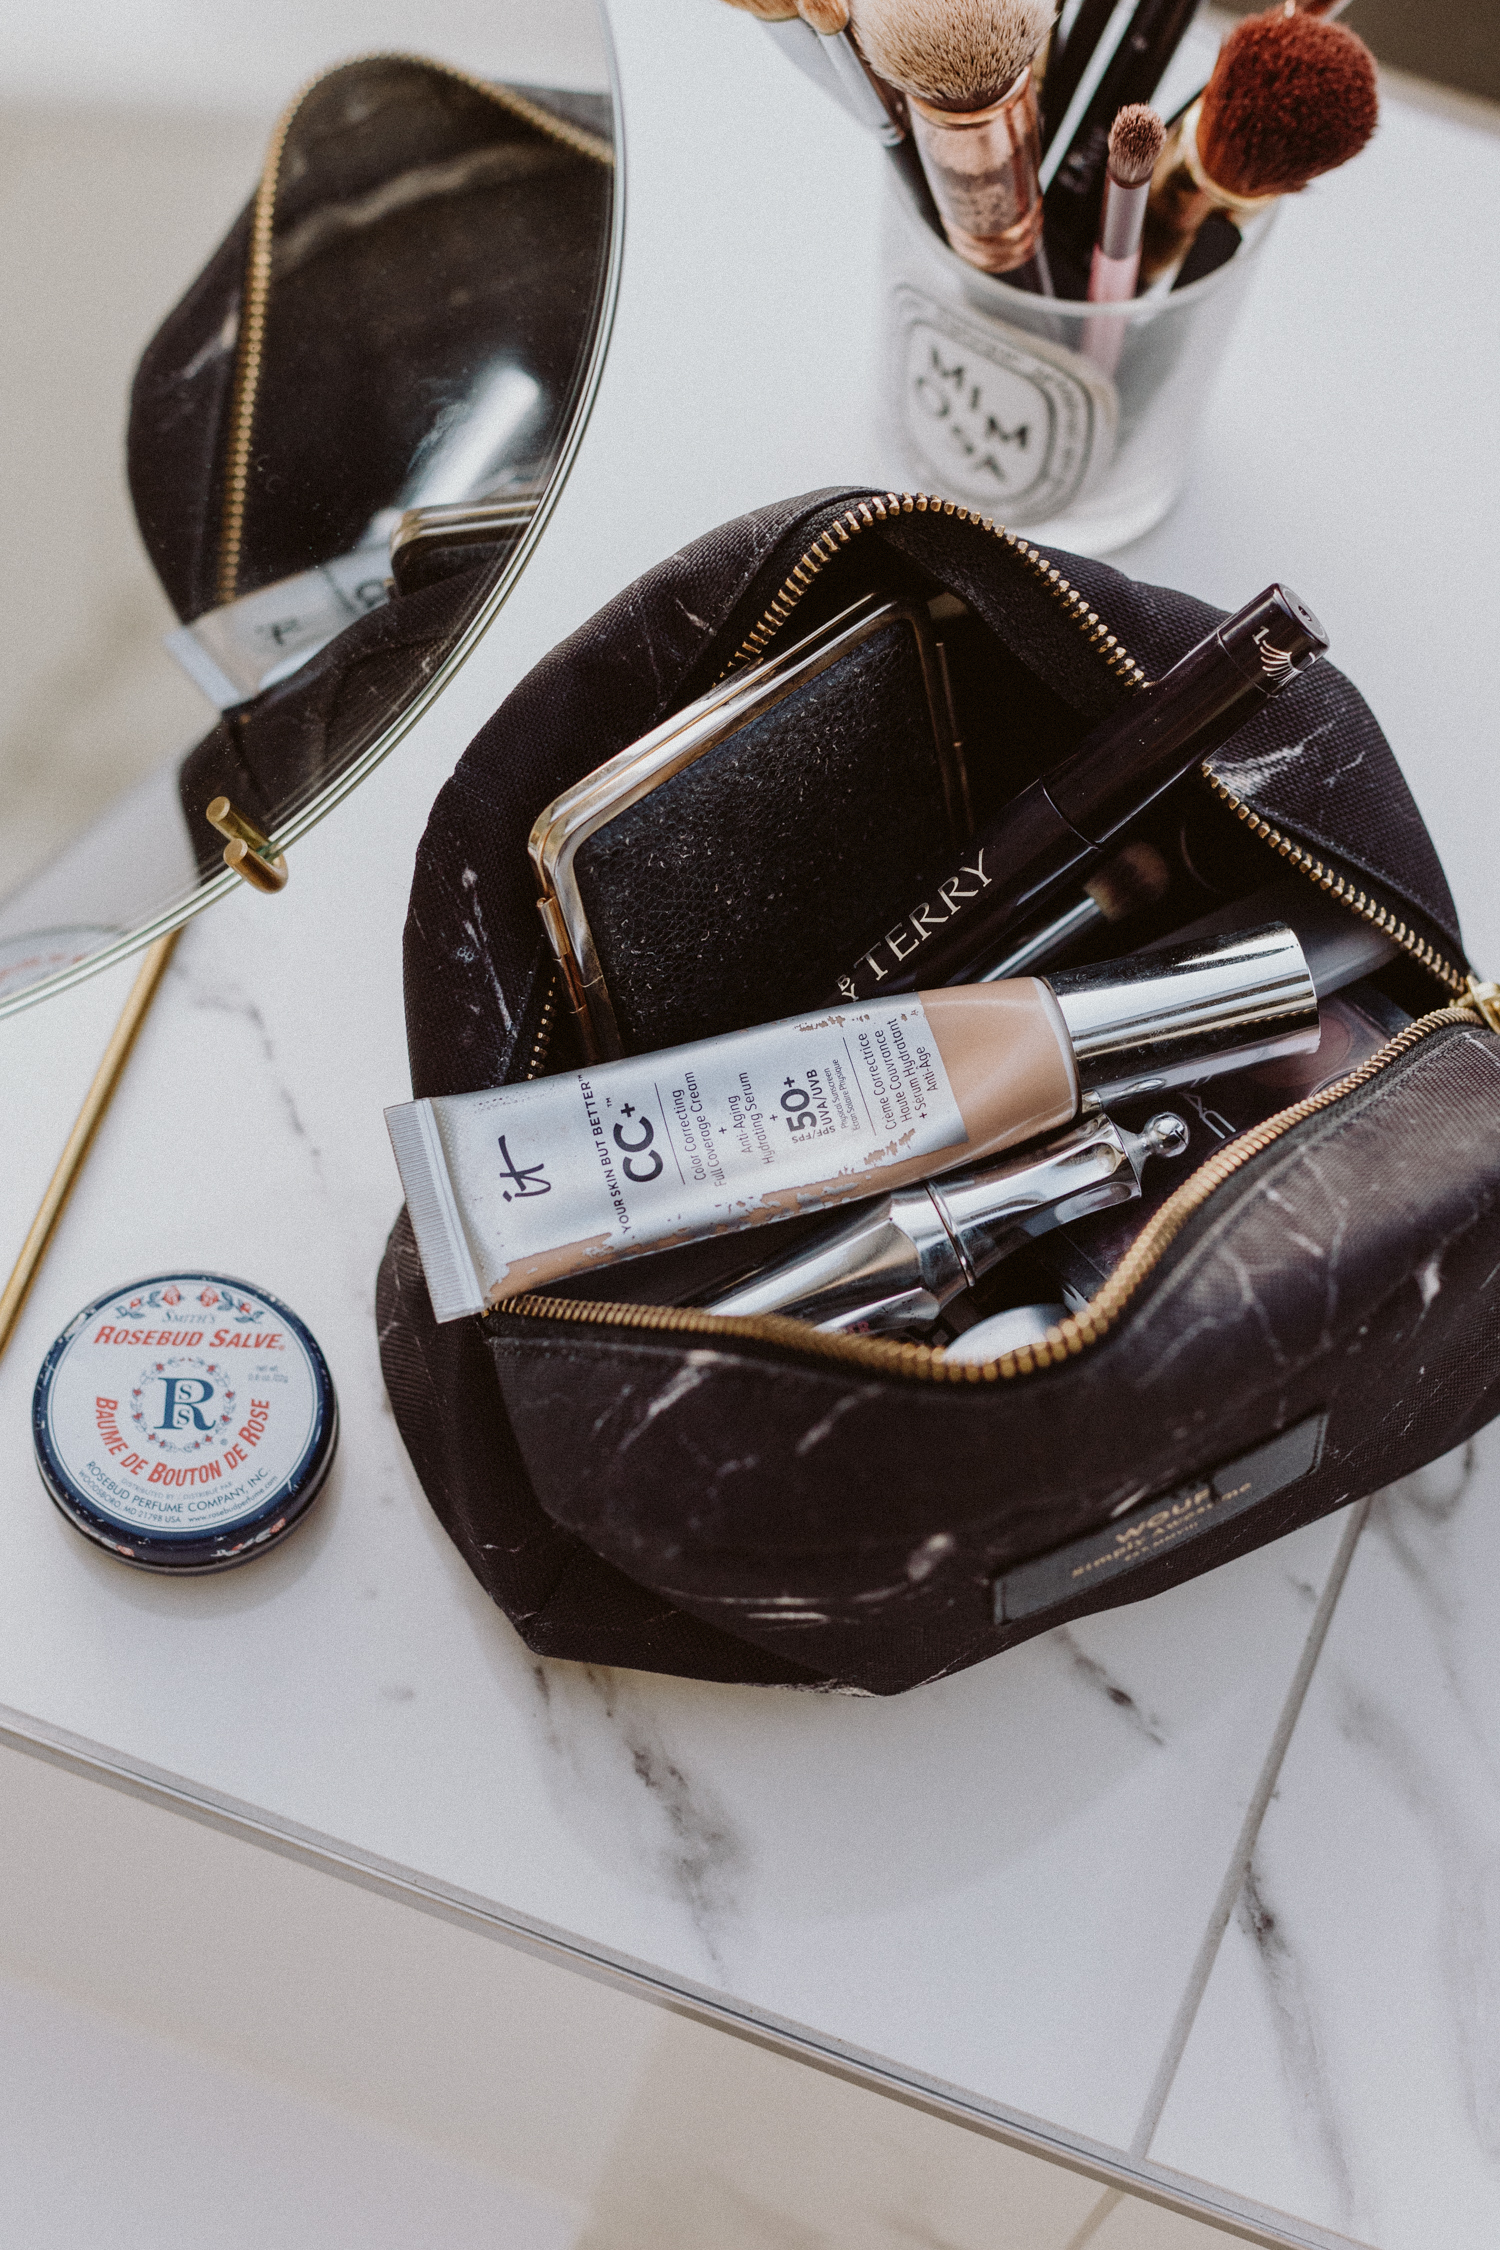 Beauty Basics: Top Beauty Produkte für den Alltag - Love Daily Dose